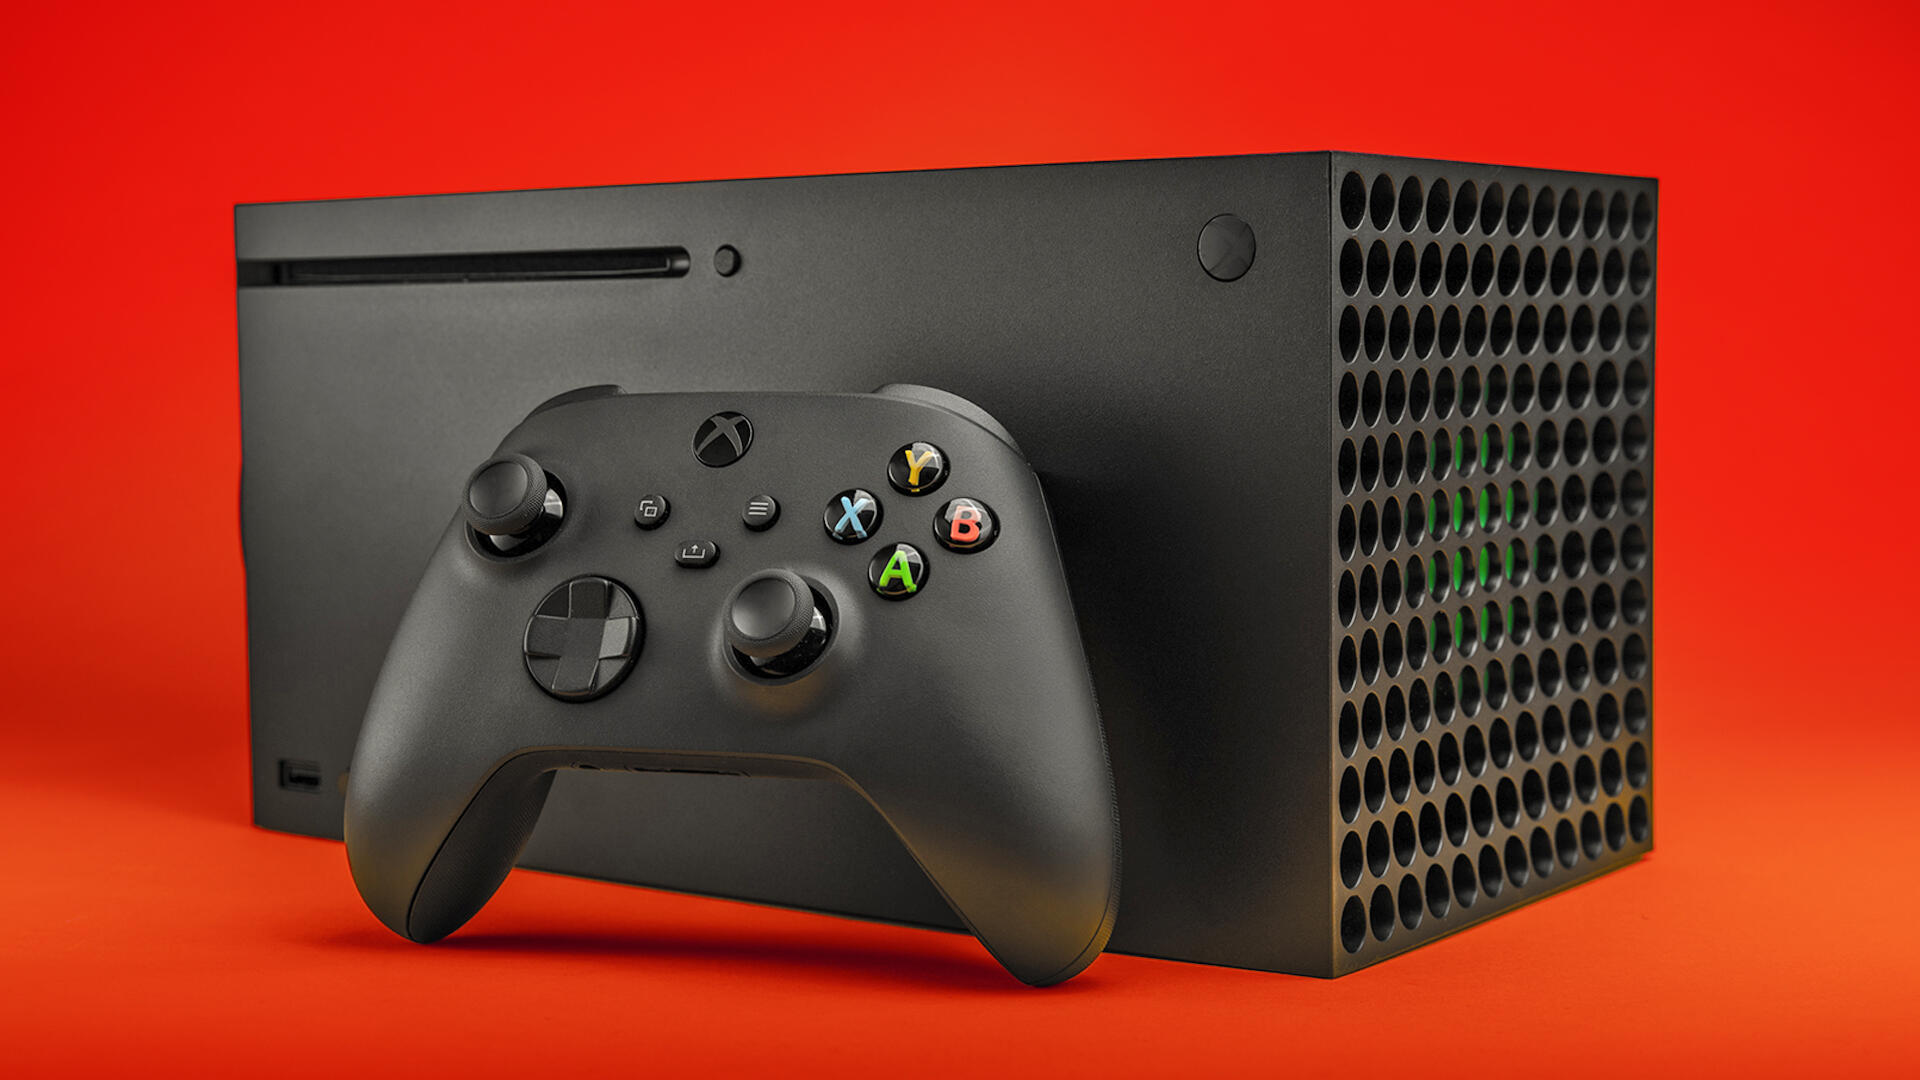 Ahead of E3 Microsoft aims to bring Xbox to billions of players with or without consoles – CNET